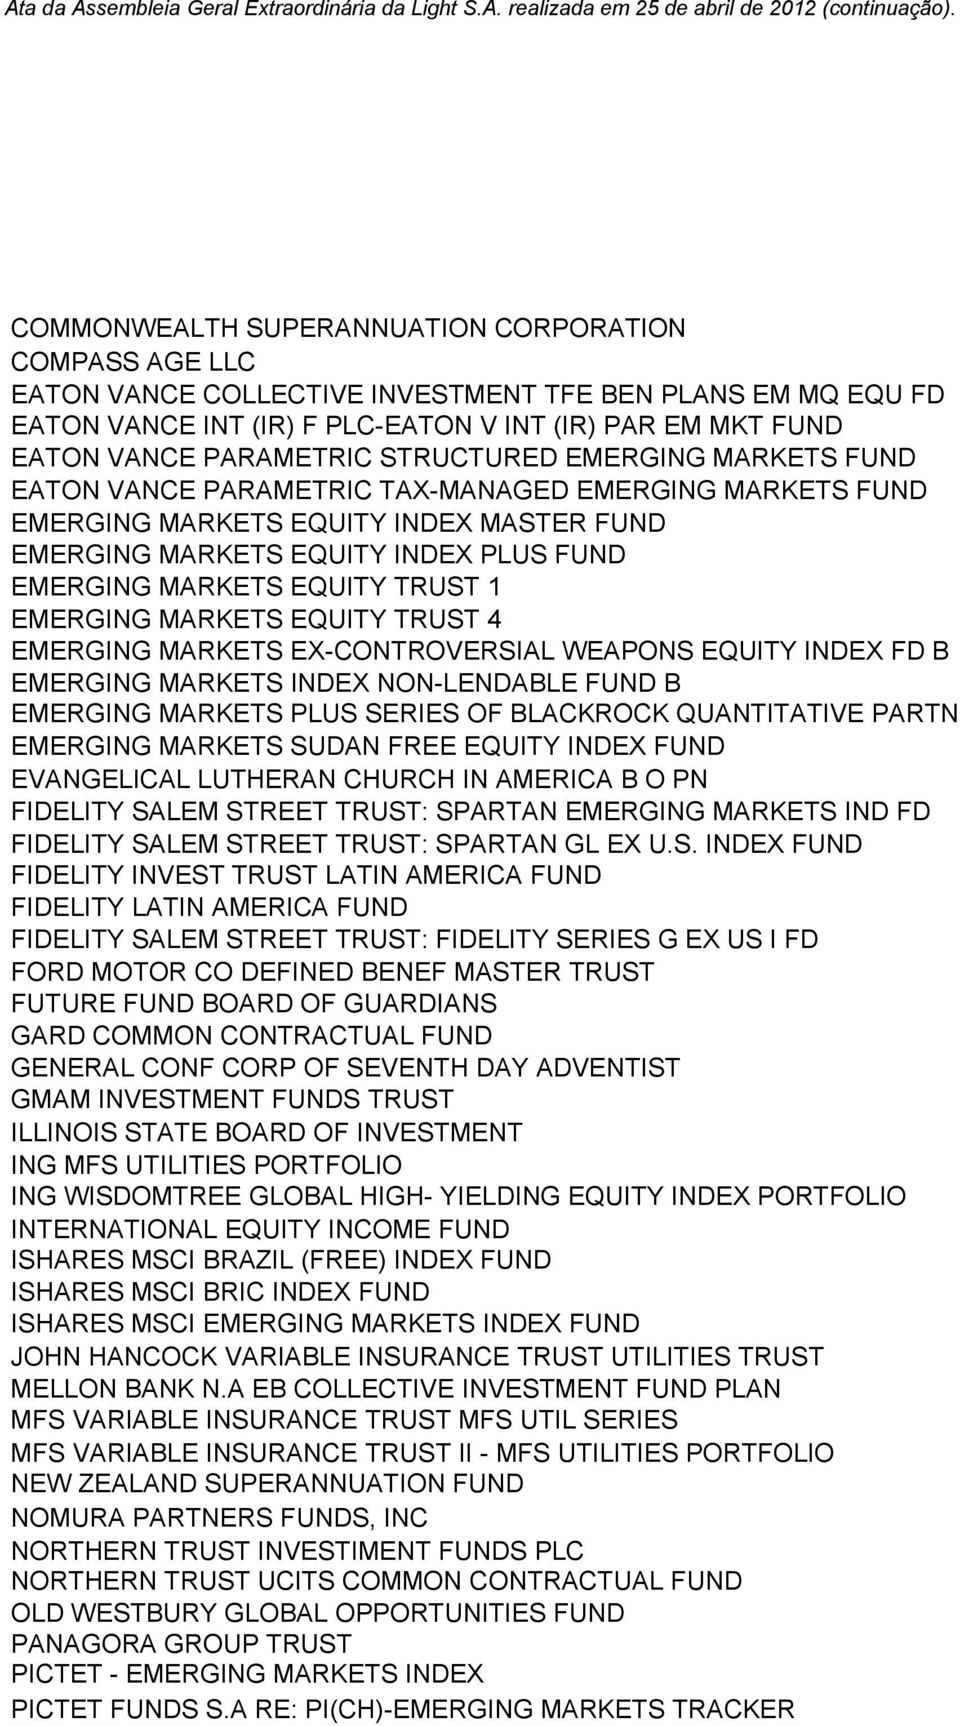 TRUST 1 EMERGING MARKETS EQUITY TRUST 4 EMERGING MARKETS EX-CONTROVERSIAL WEAPONS EQUITY INDEX FD B EMERGING MARKETS INDEX NON-LENDABLE FUND B EMERGING MARKETS PLUS SERIES OF BLACKROCK QUANTITATIVE